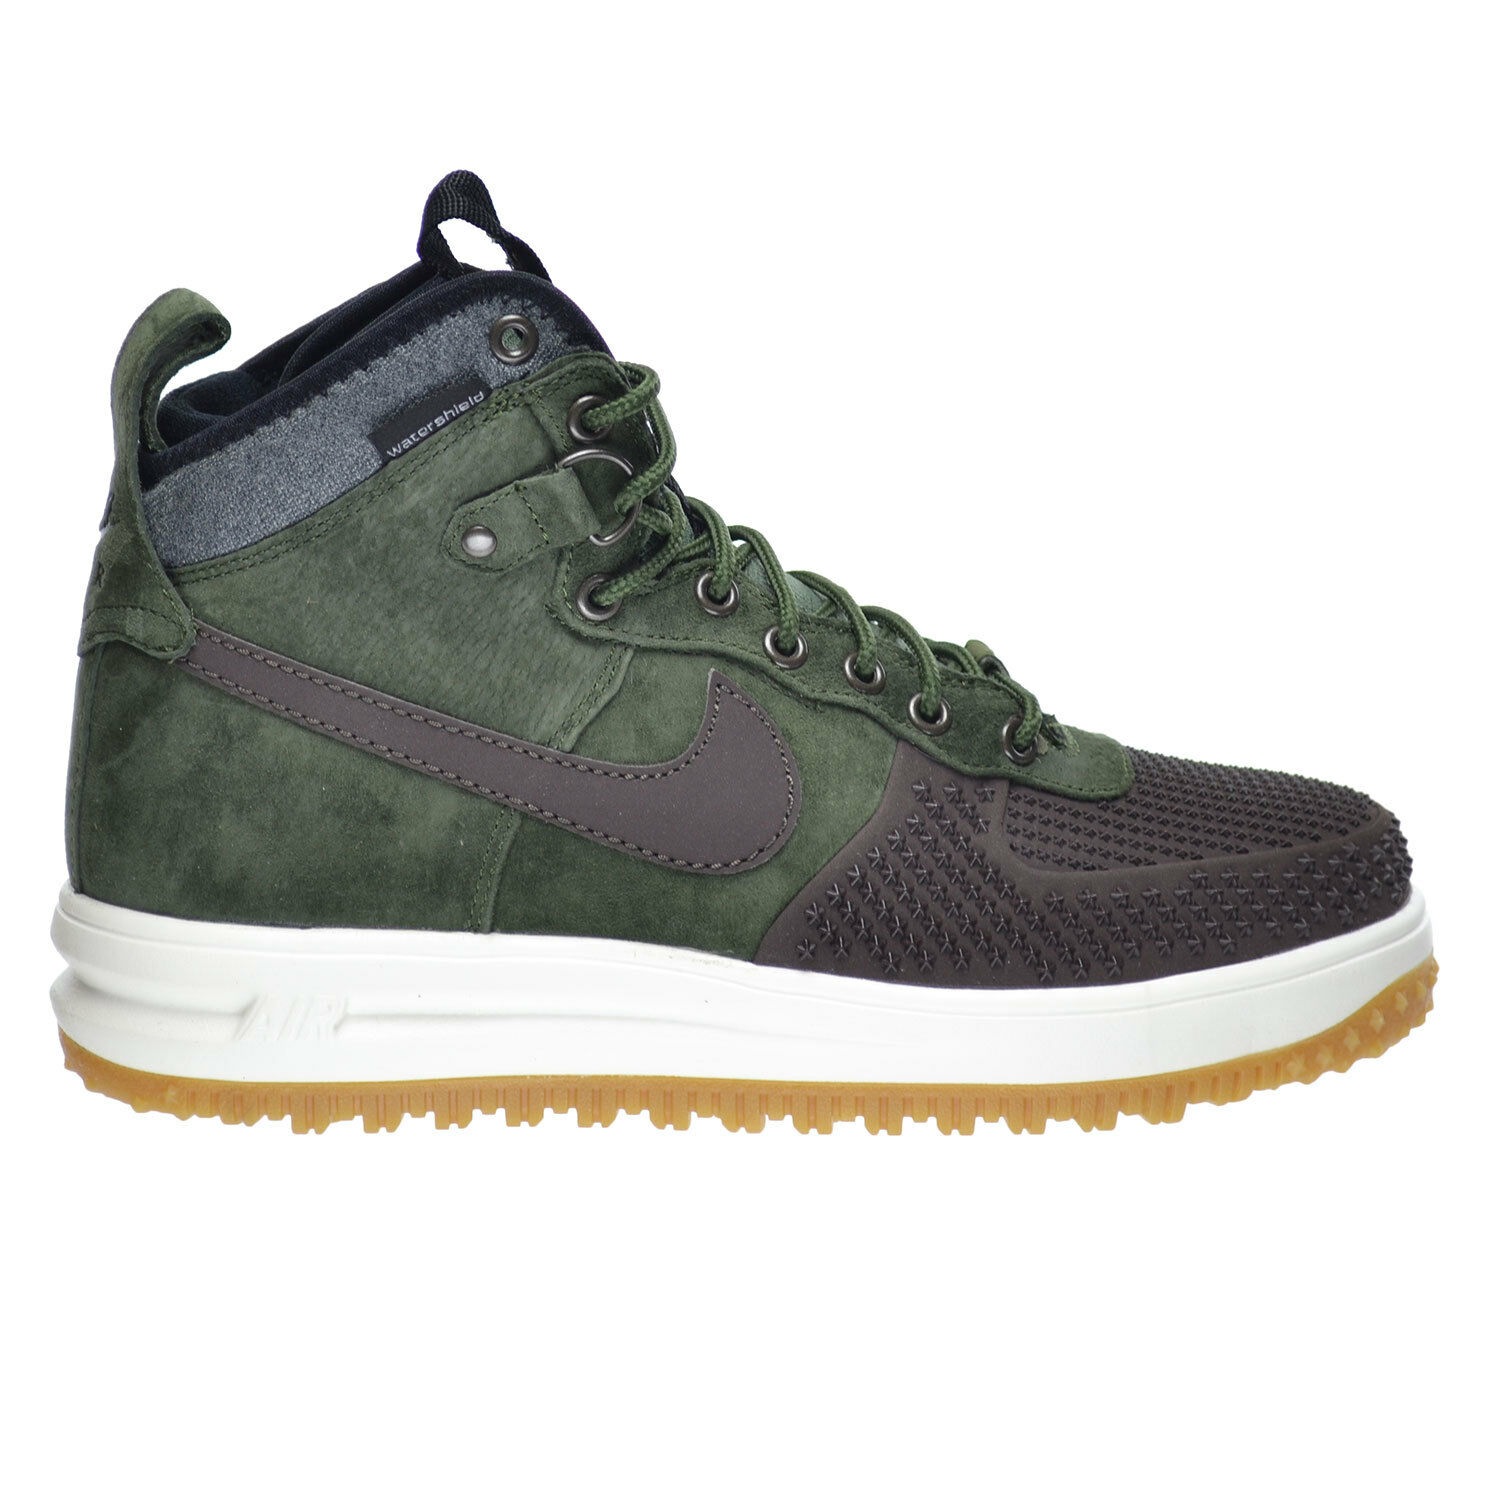 Nike Lunar Force 1 Duckboot Men's shoes Brown Army Olive-Black-Sliver 805899-200